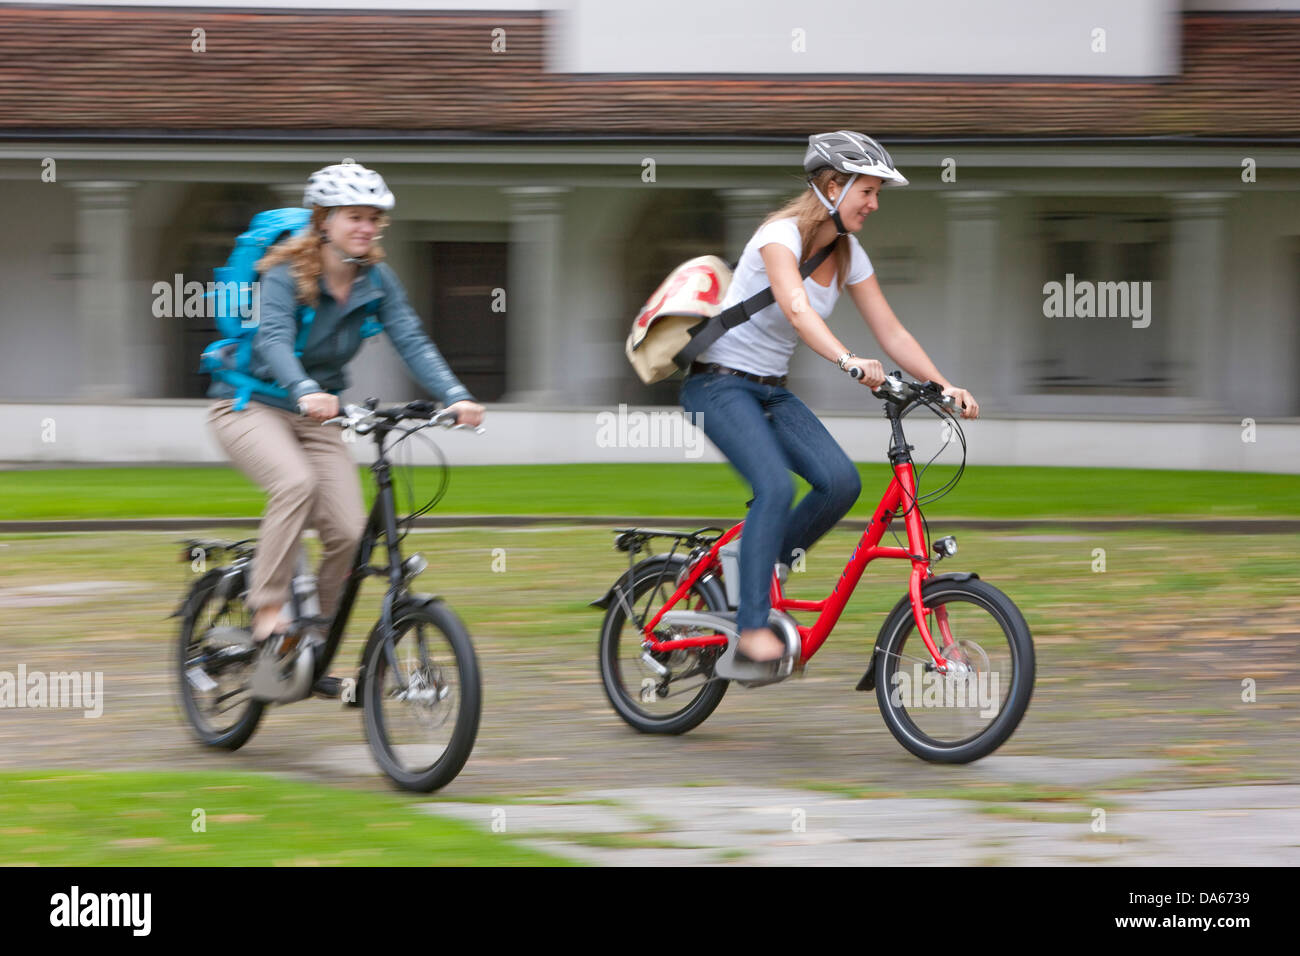 Students, electric bicycle, Flyer, eBike, bicycle, bicycles, bike, riding a bicycle, Switzerland, Europe, women, - Stock Image